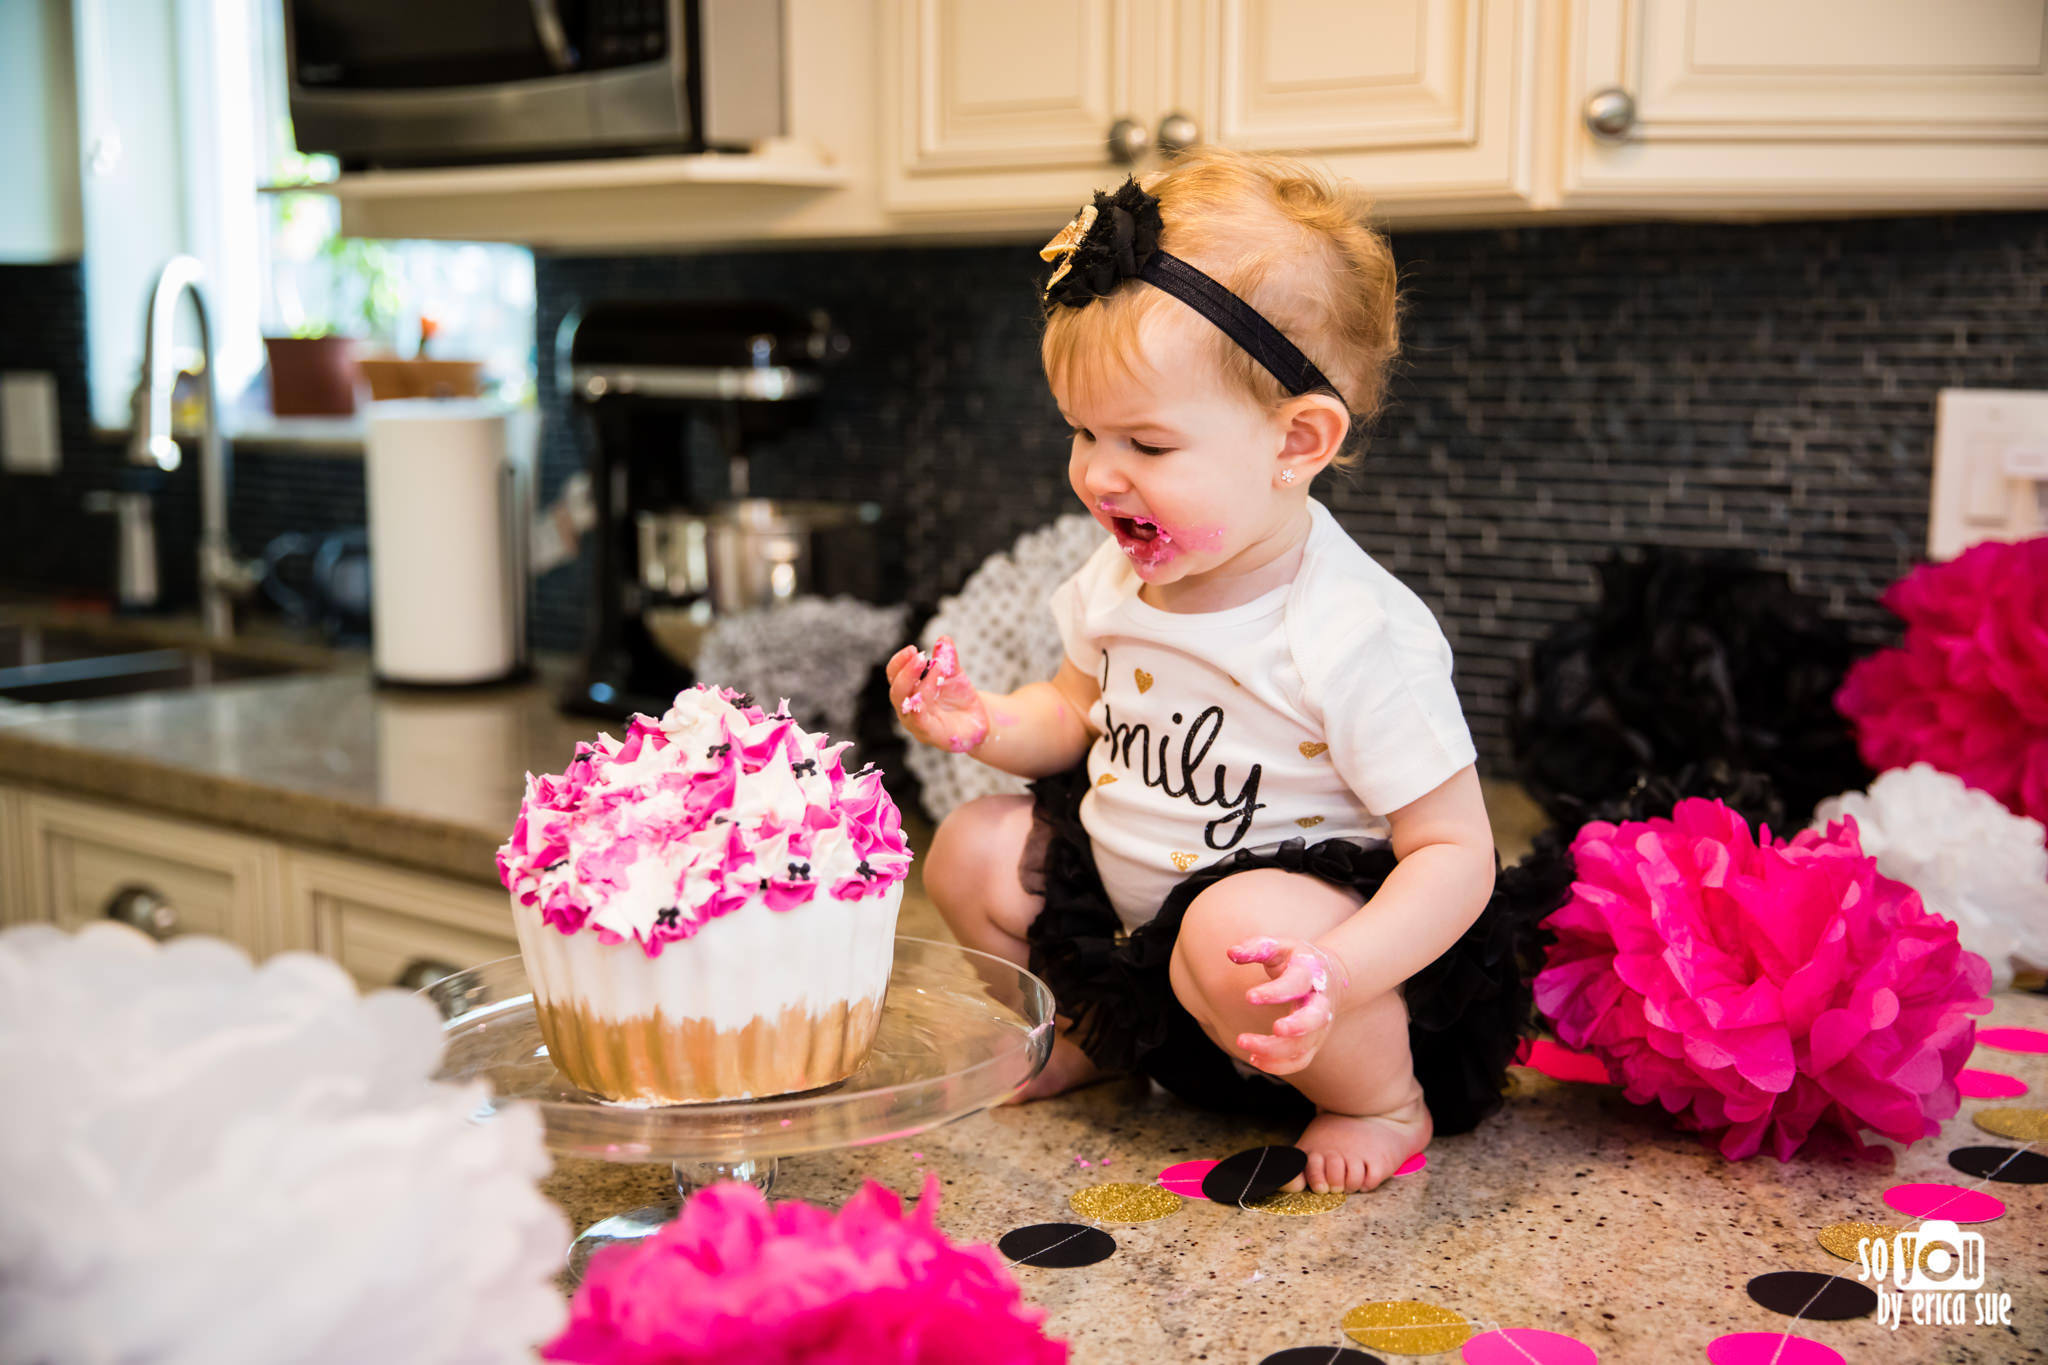 so-you-by-erica-sue-hollywood-fl-photographer-in-home-lifestyle-1st-birthday-cake-smash-3955.jpg